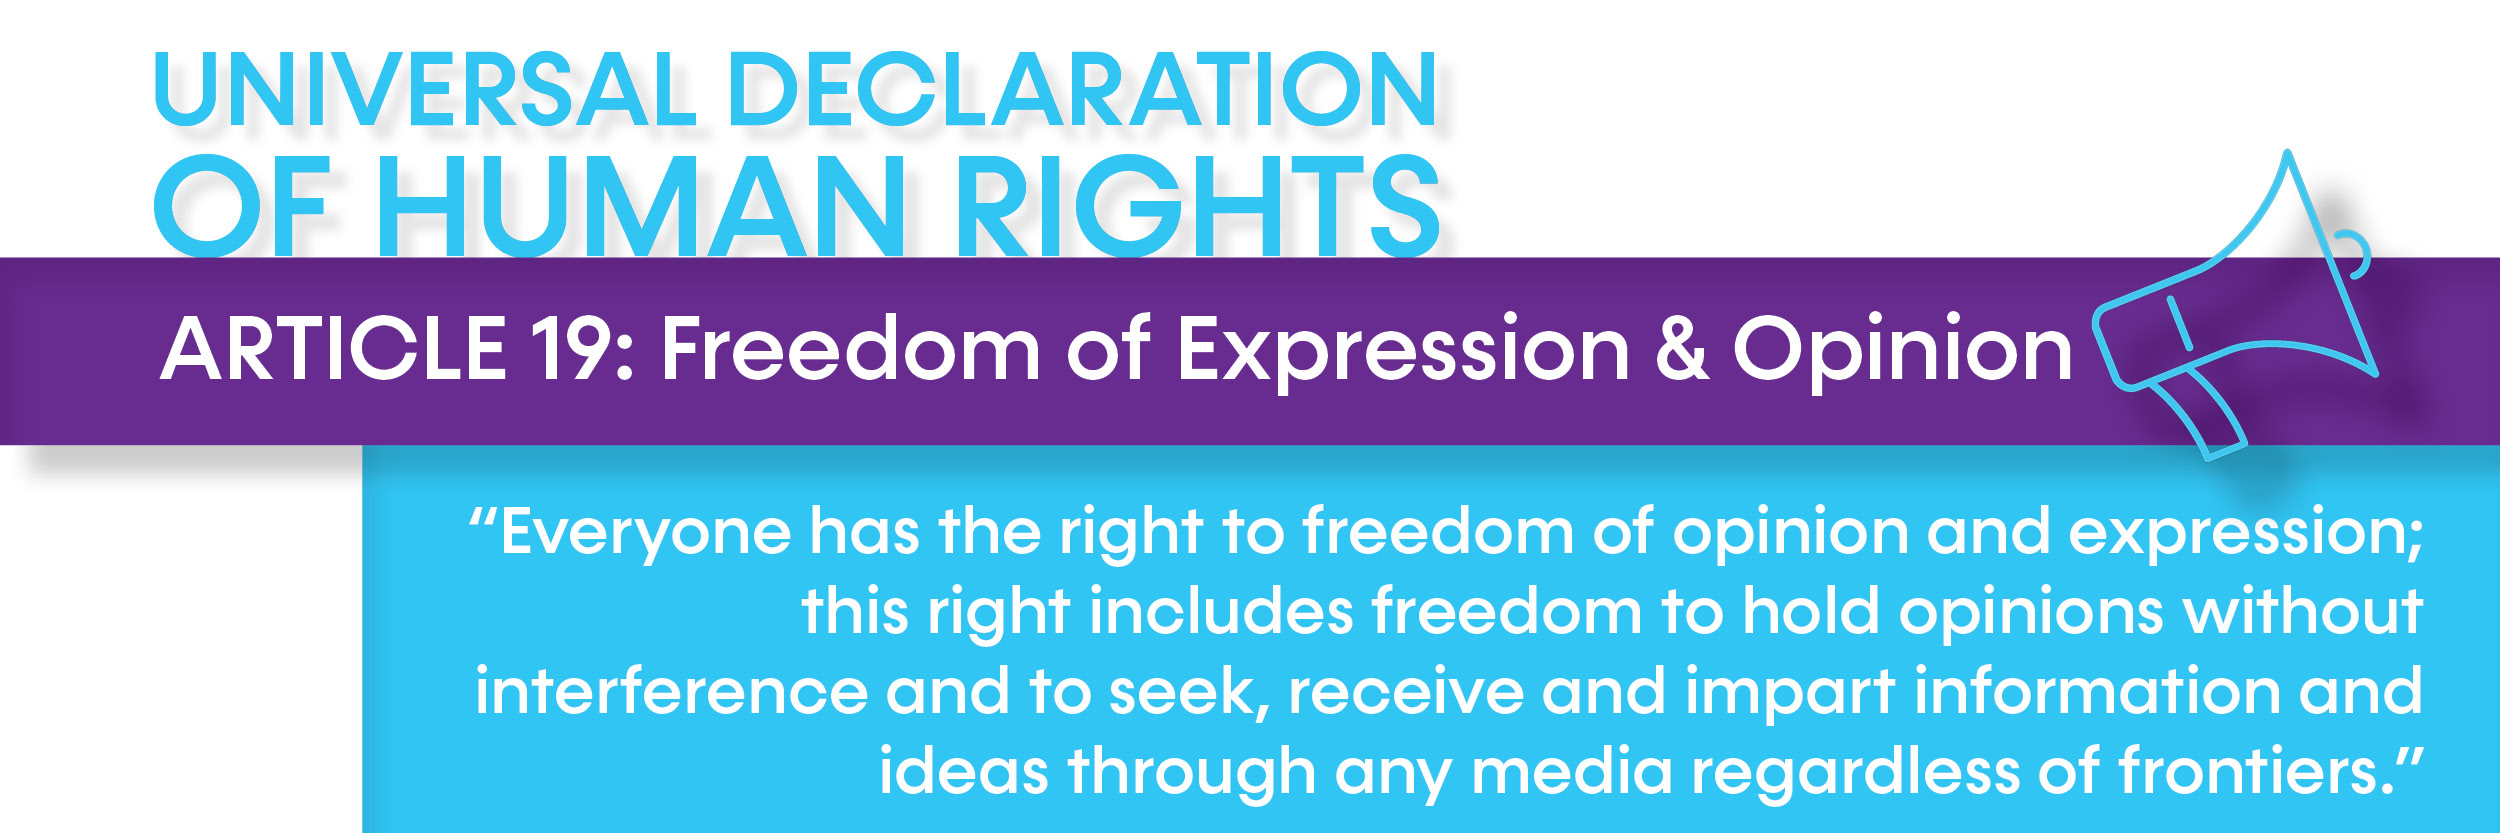 "Article 19: Freedom of Expression & Opinion: ""Everyone has the right to freedom of opinion and expression; this right includes freedom to hold opinions without interference and to seek, receive and impart information and ideas through any media regardless of frontiers."""